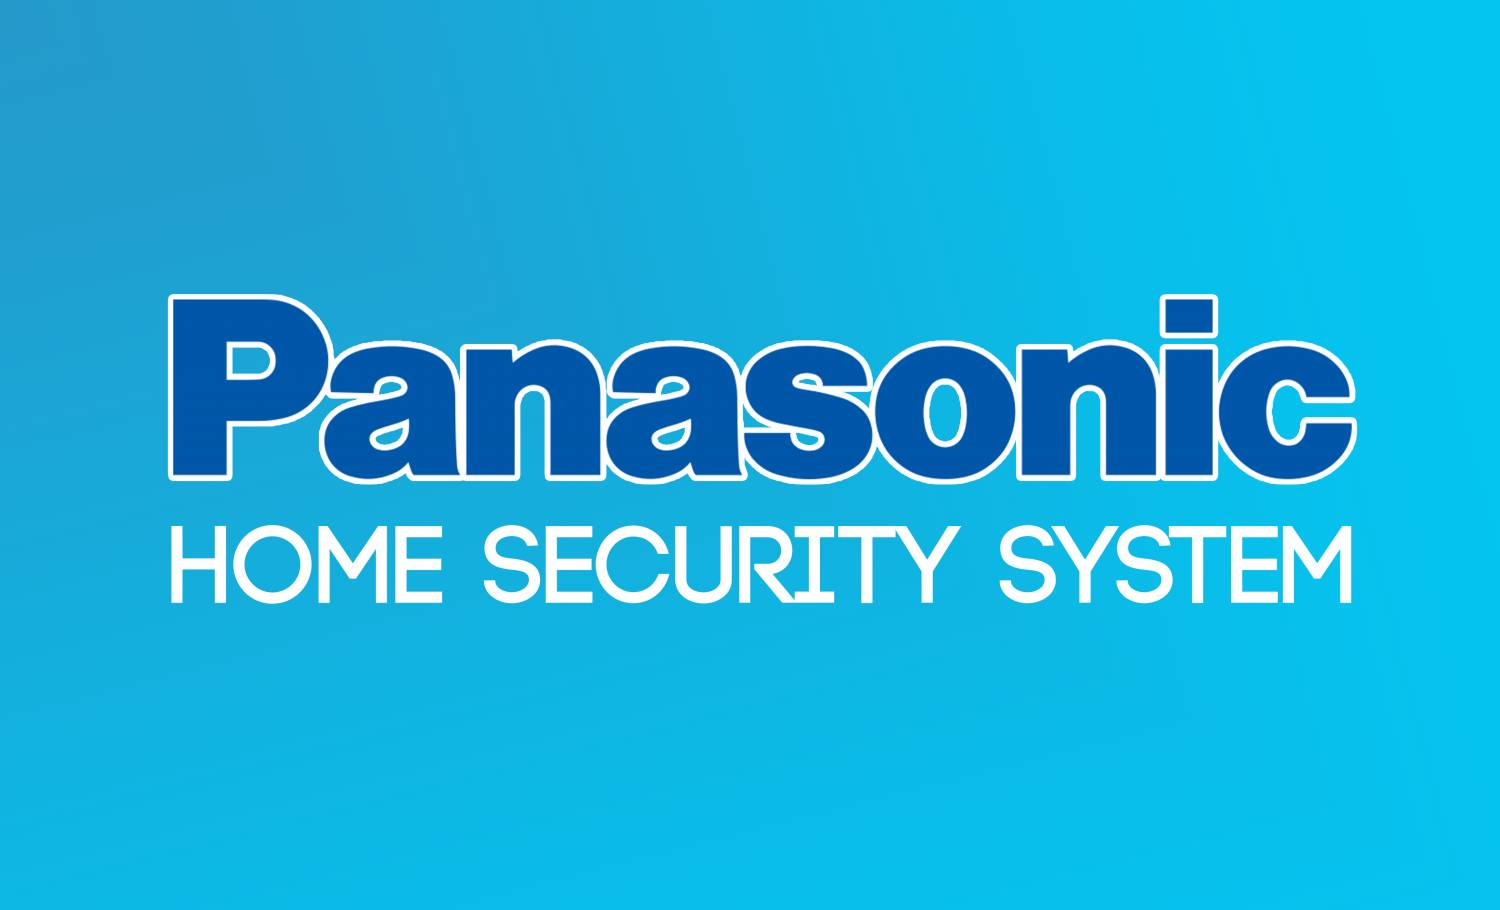 Panasonic - Home Security System